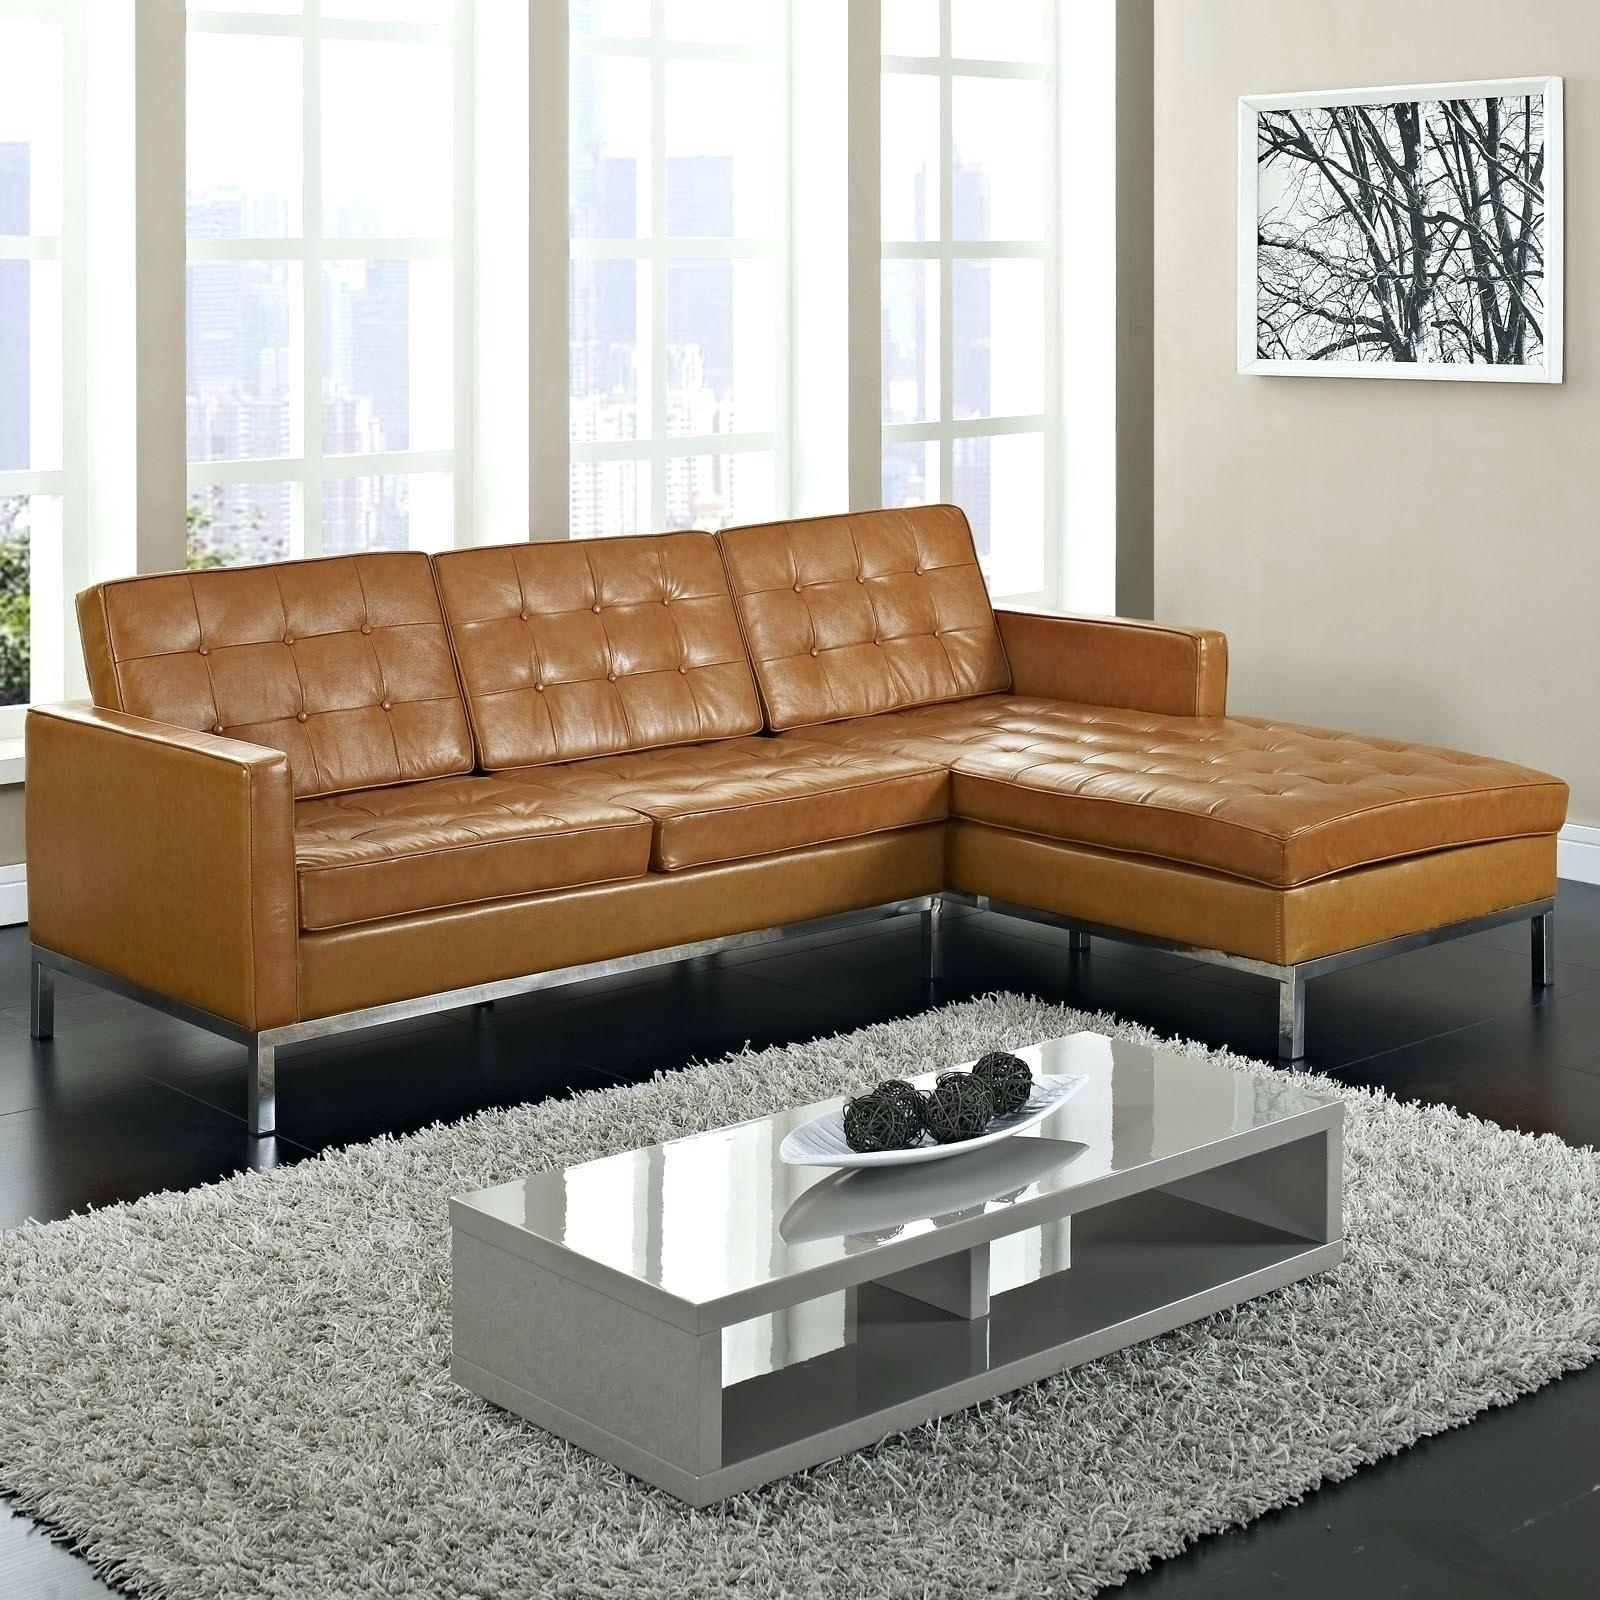 Camel Brown Leather Sofa | Tehranmix Decoration Throughout Camel Color Leather Sofas (View 19 of 20)